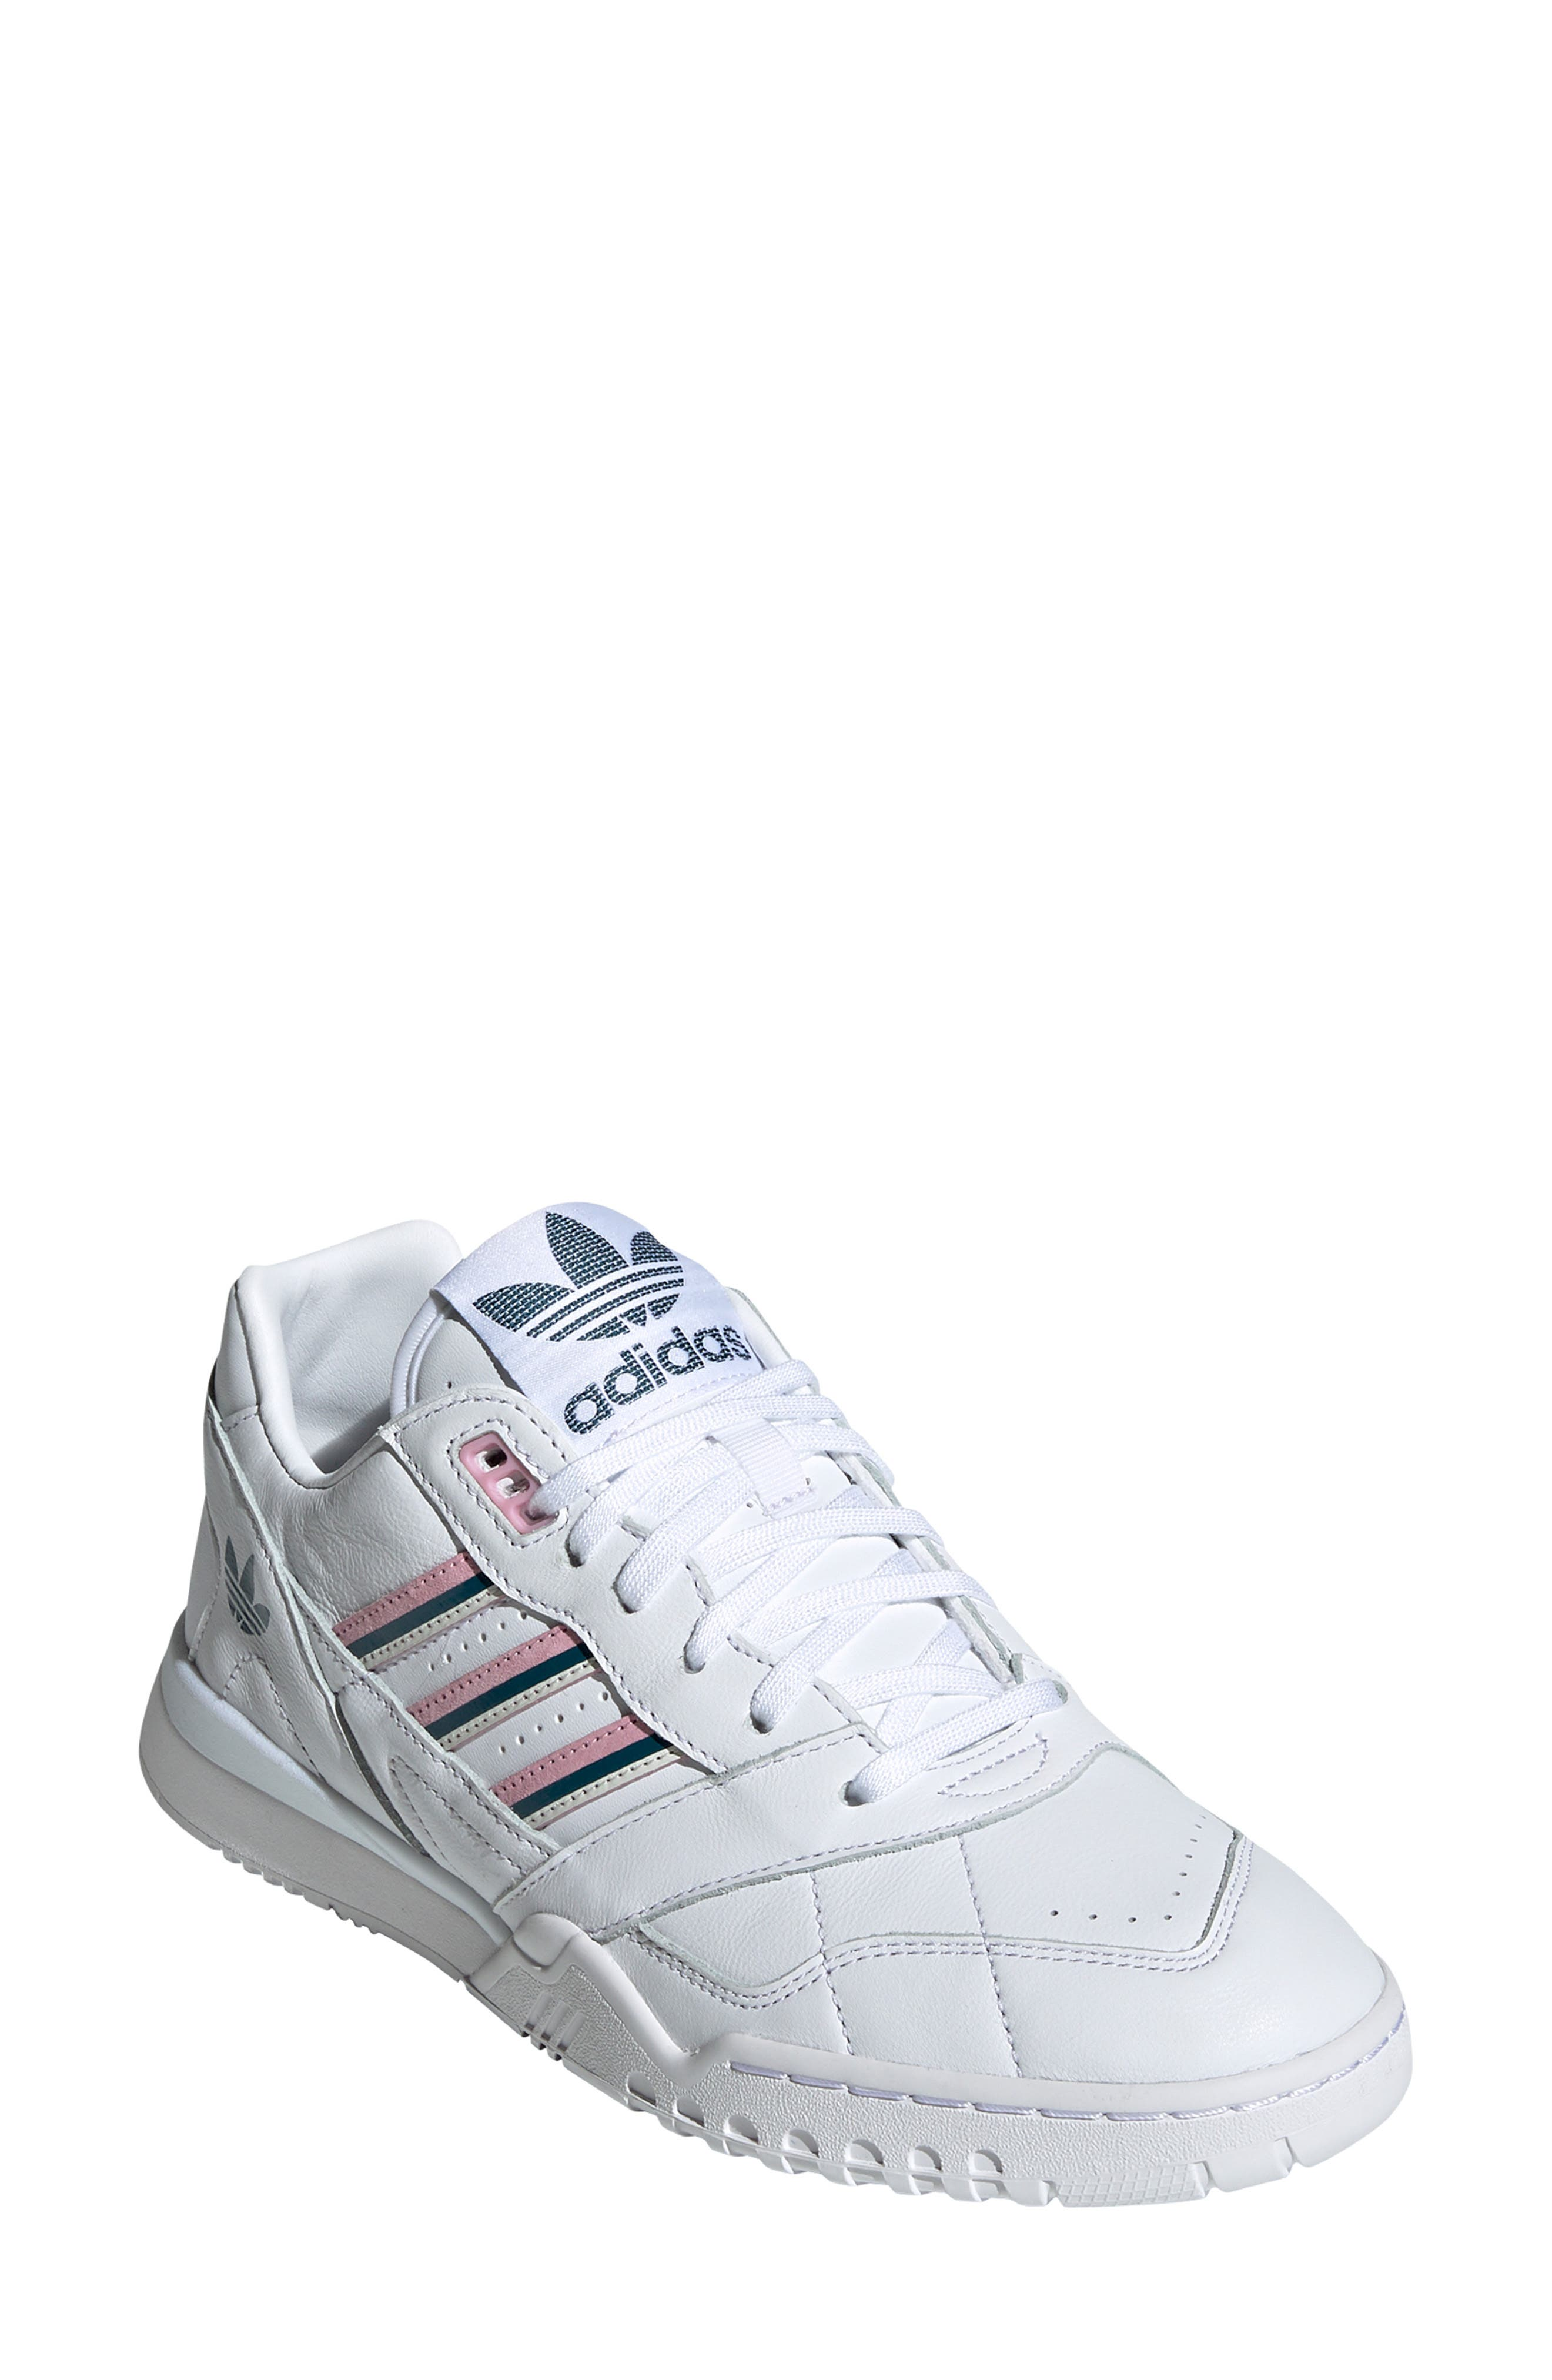 Adidas A.r. Trainer Sneaker- White